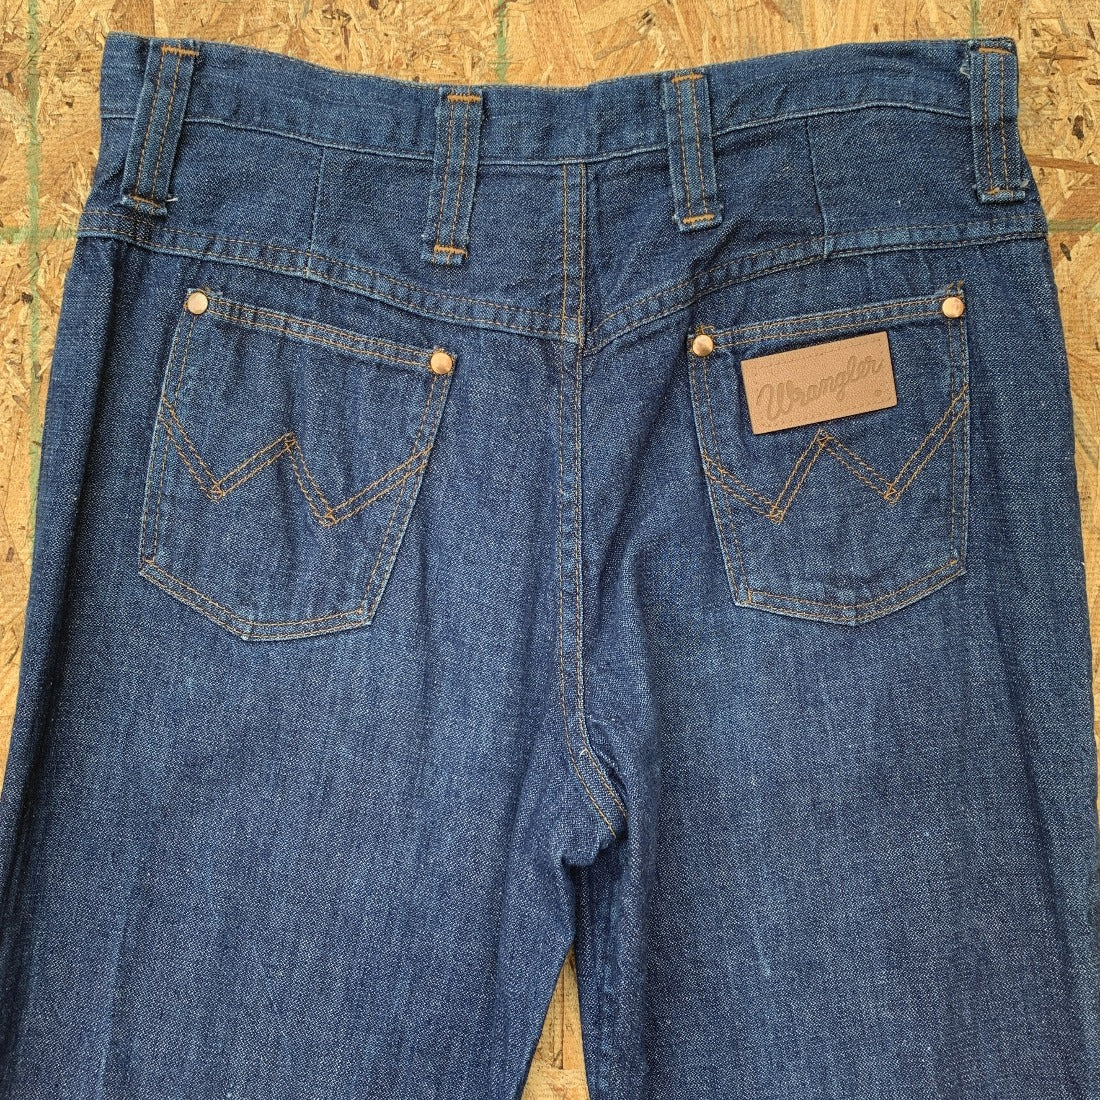 70s Wrangler Jeans Denim Pants | 30